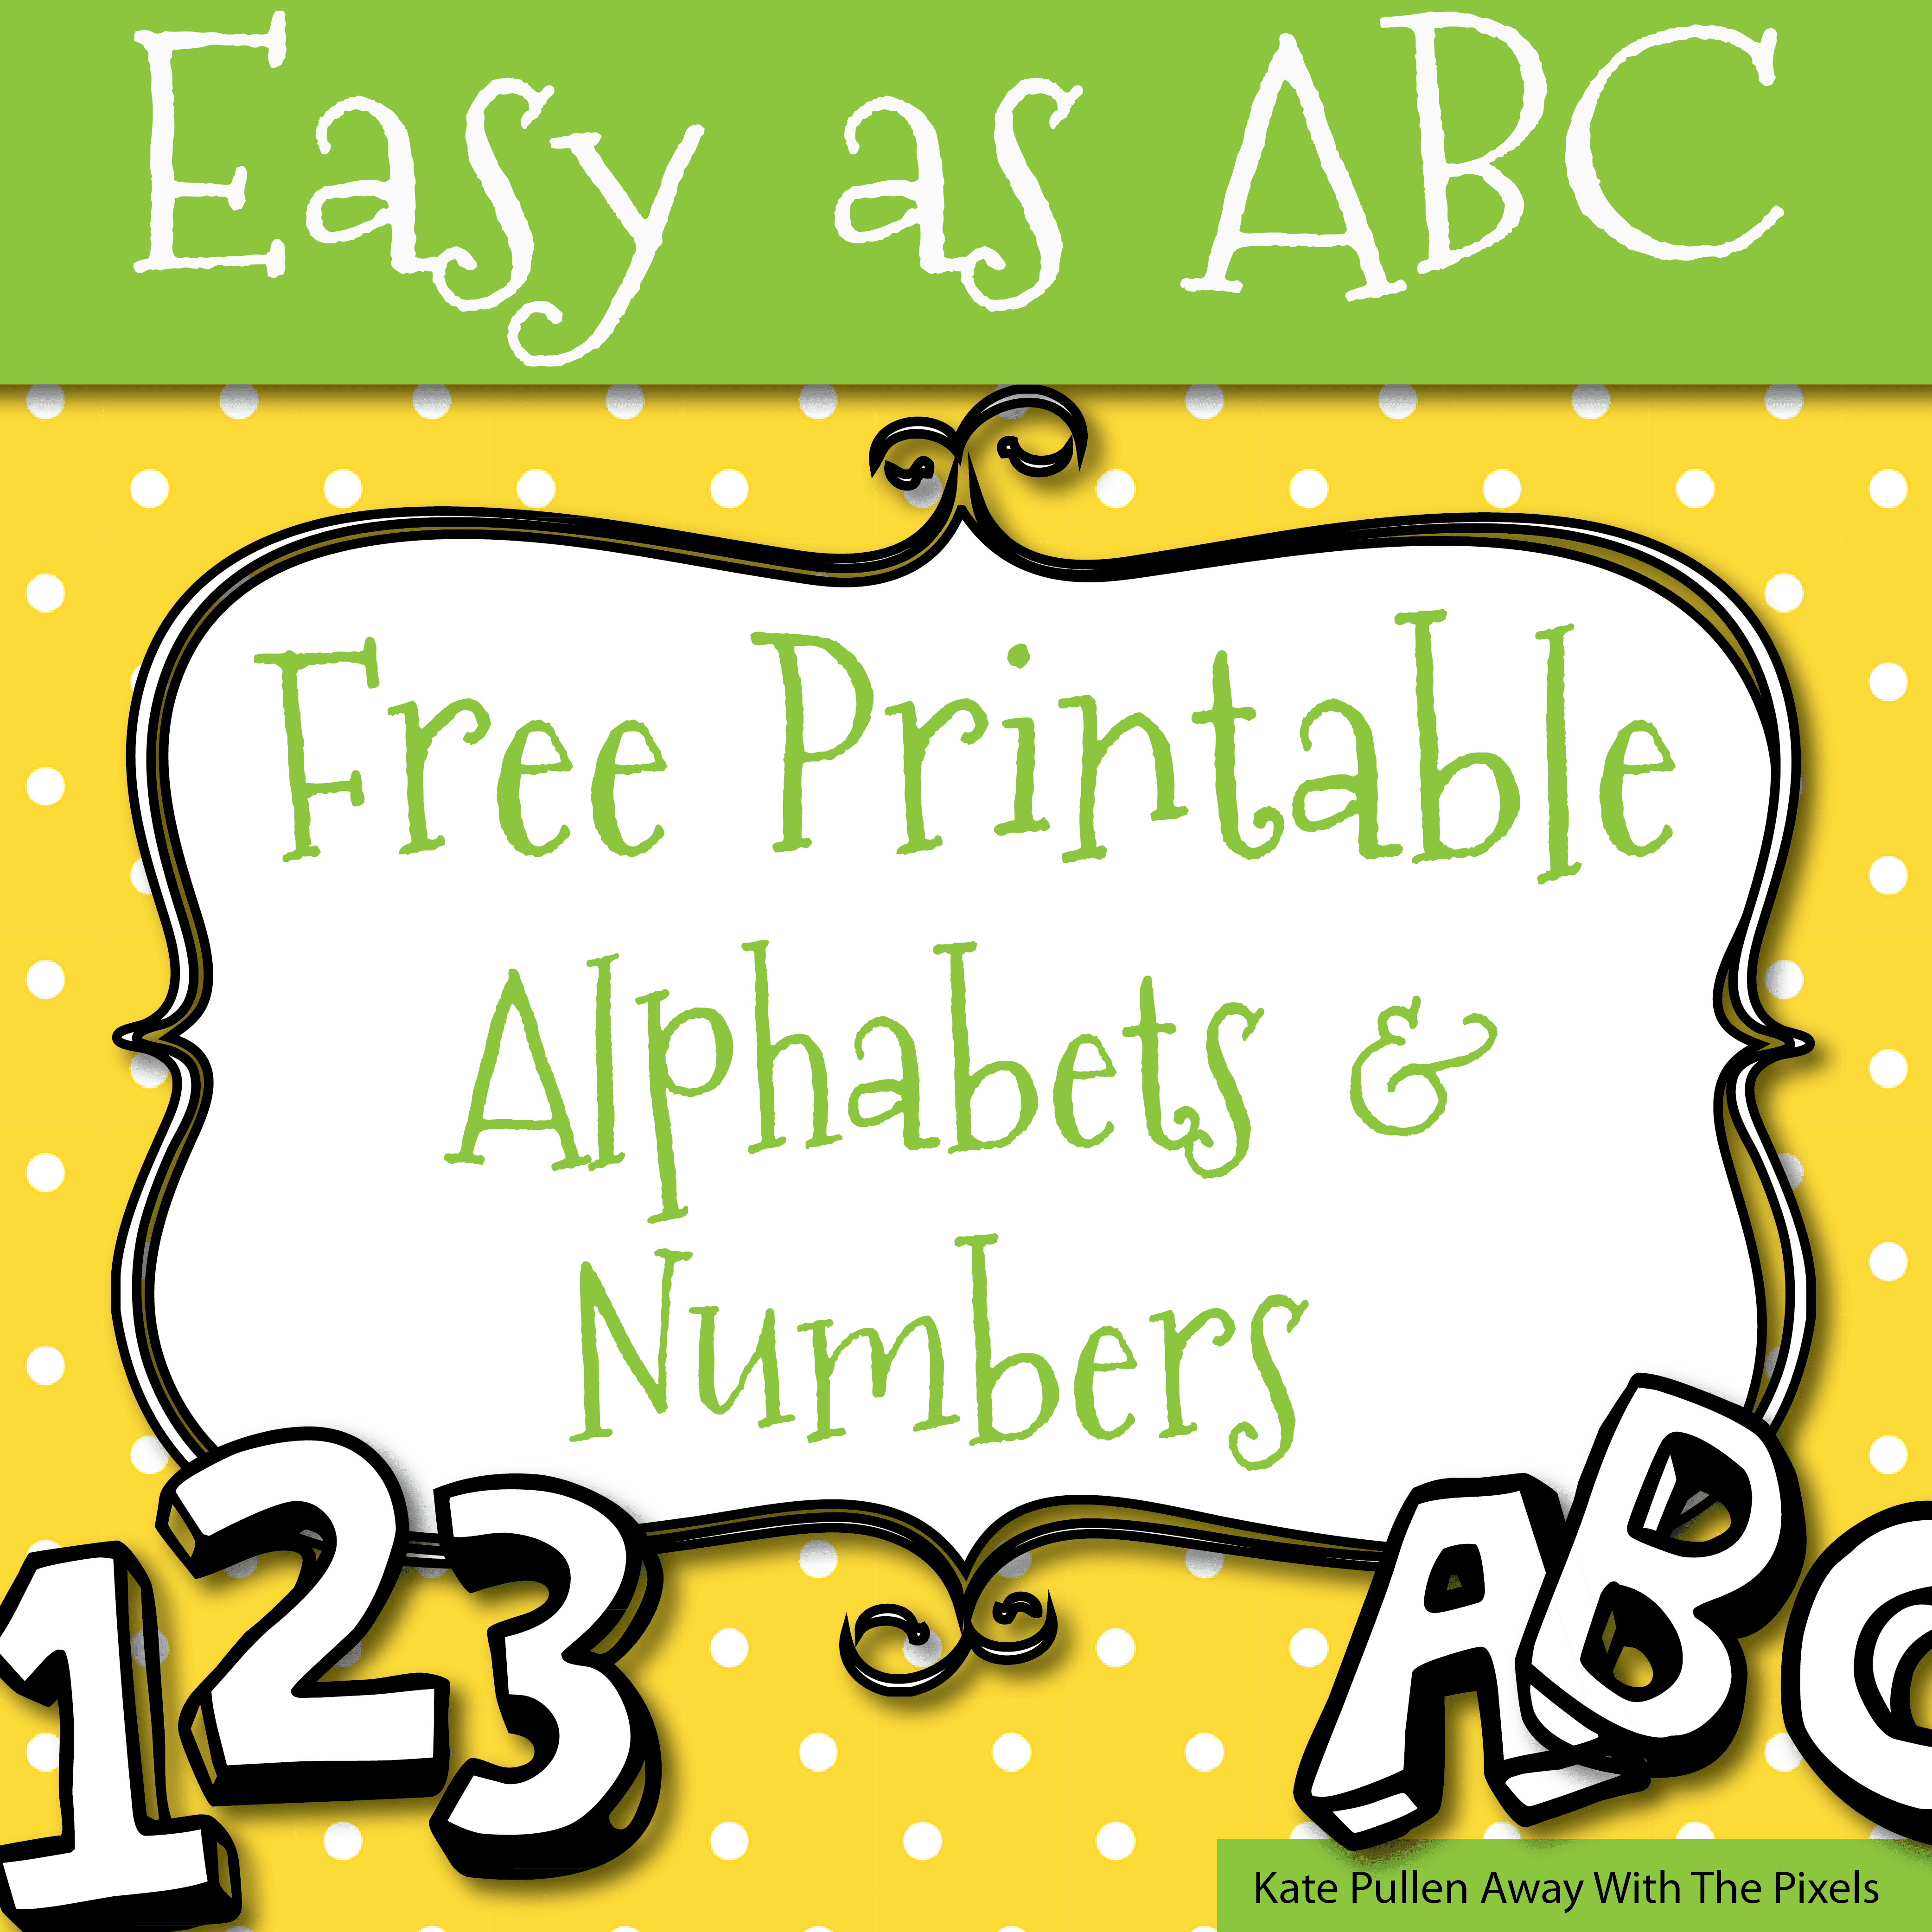 Free Printable Letters And Numbers For Crafts - Free Printable Alphabet Letters